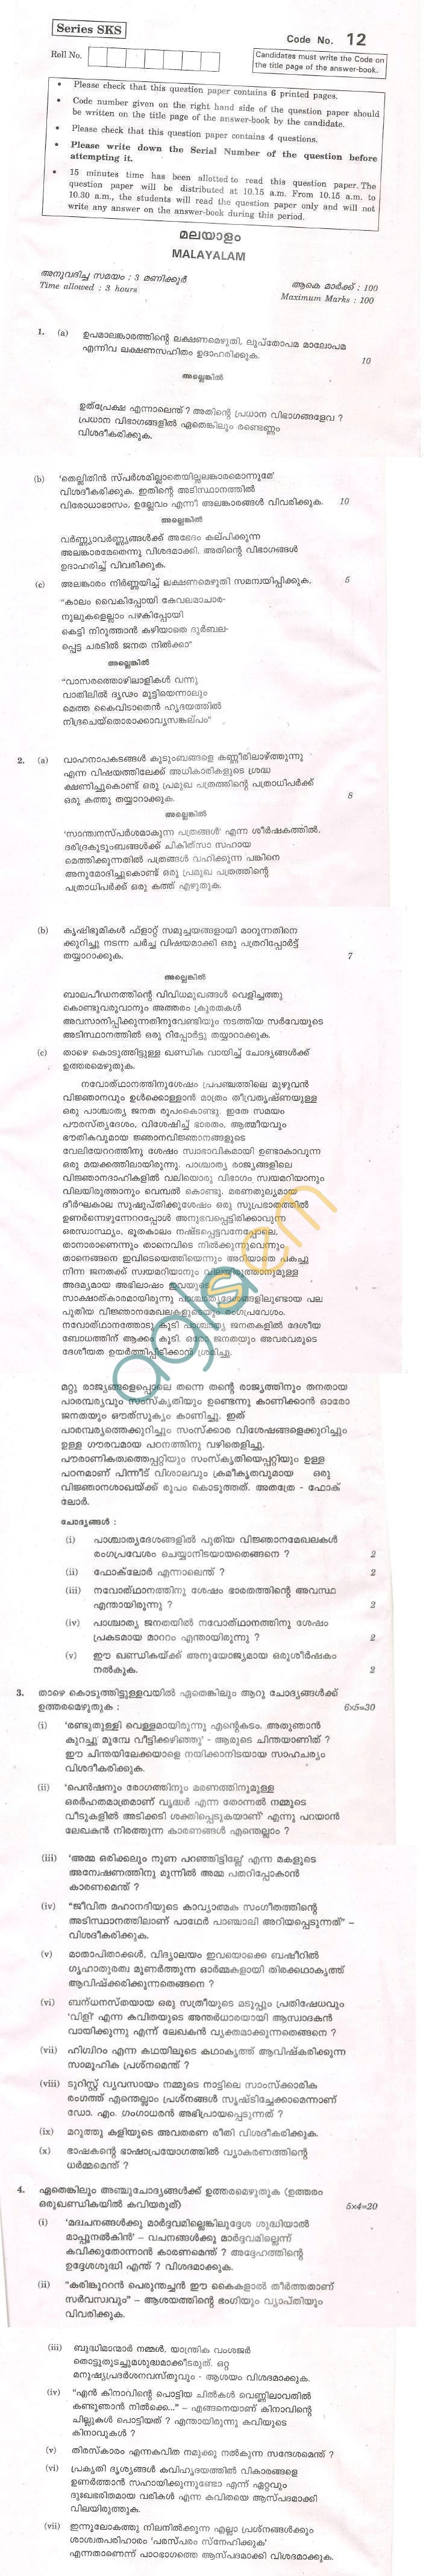 CBSE Board Exam 2013 Class XII Question Paper - Malayalam